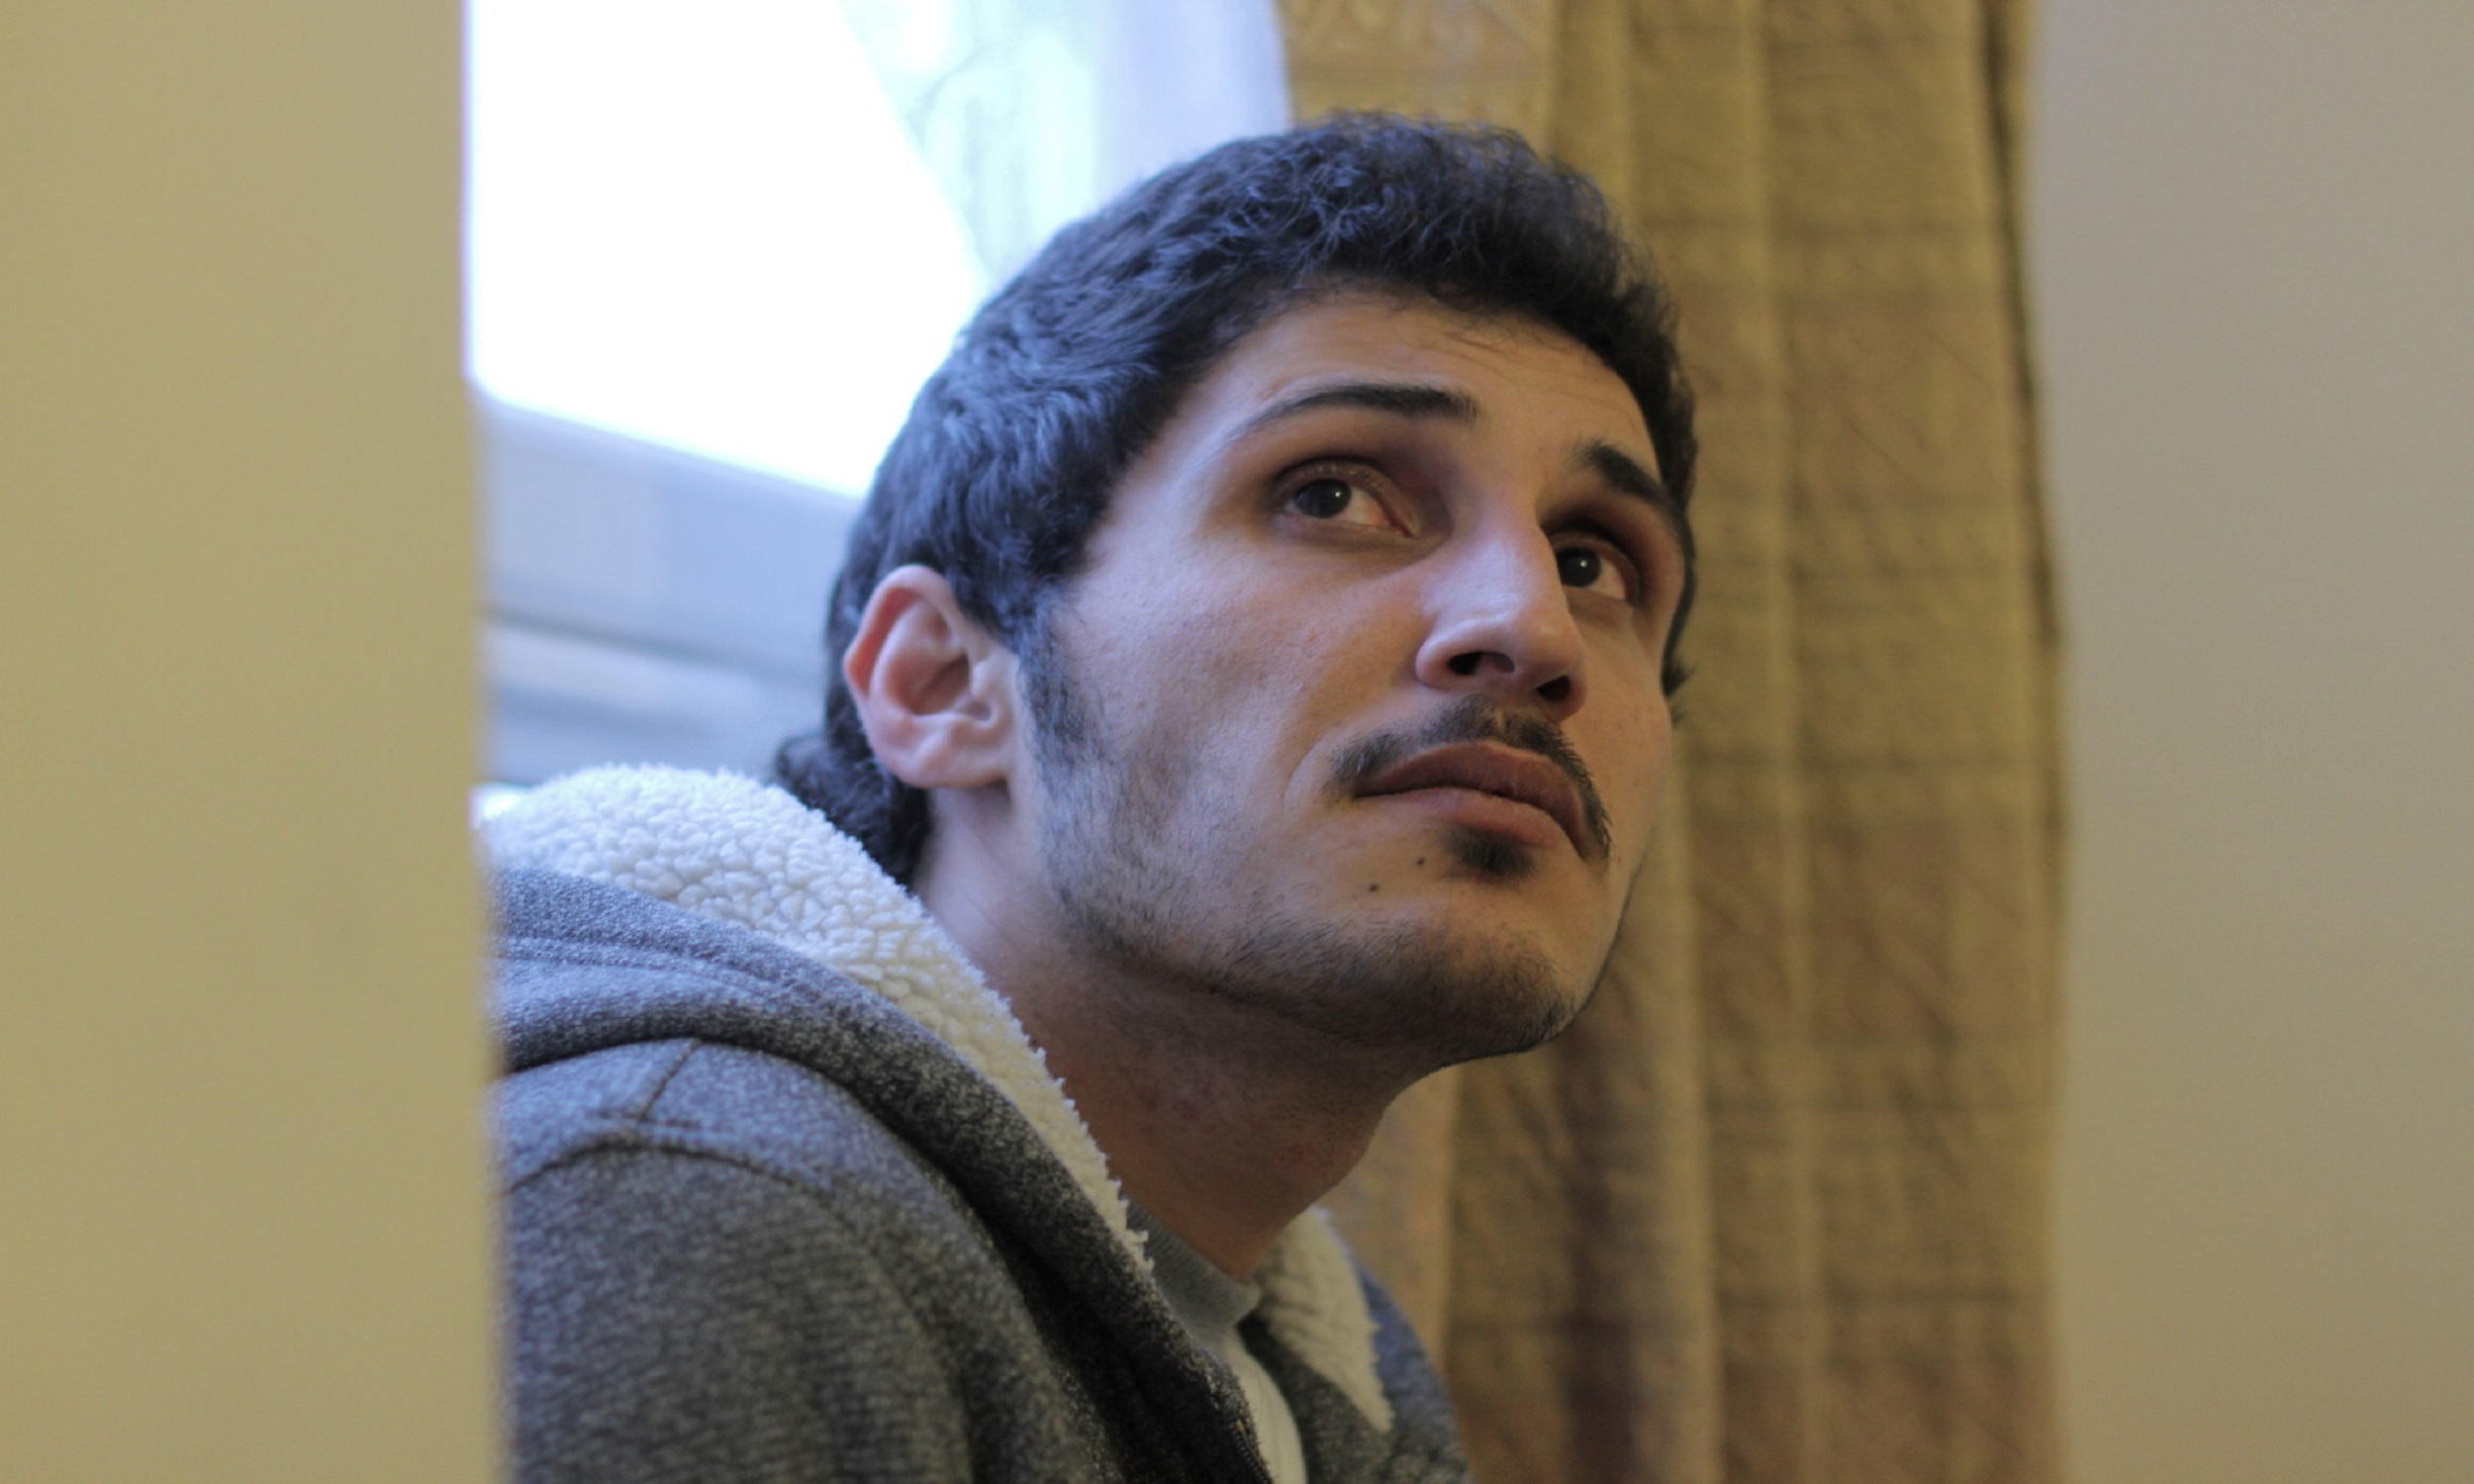 A close up photo of Dariush, a refugee from Iran